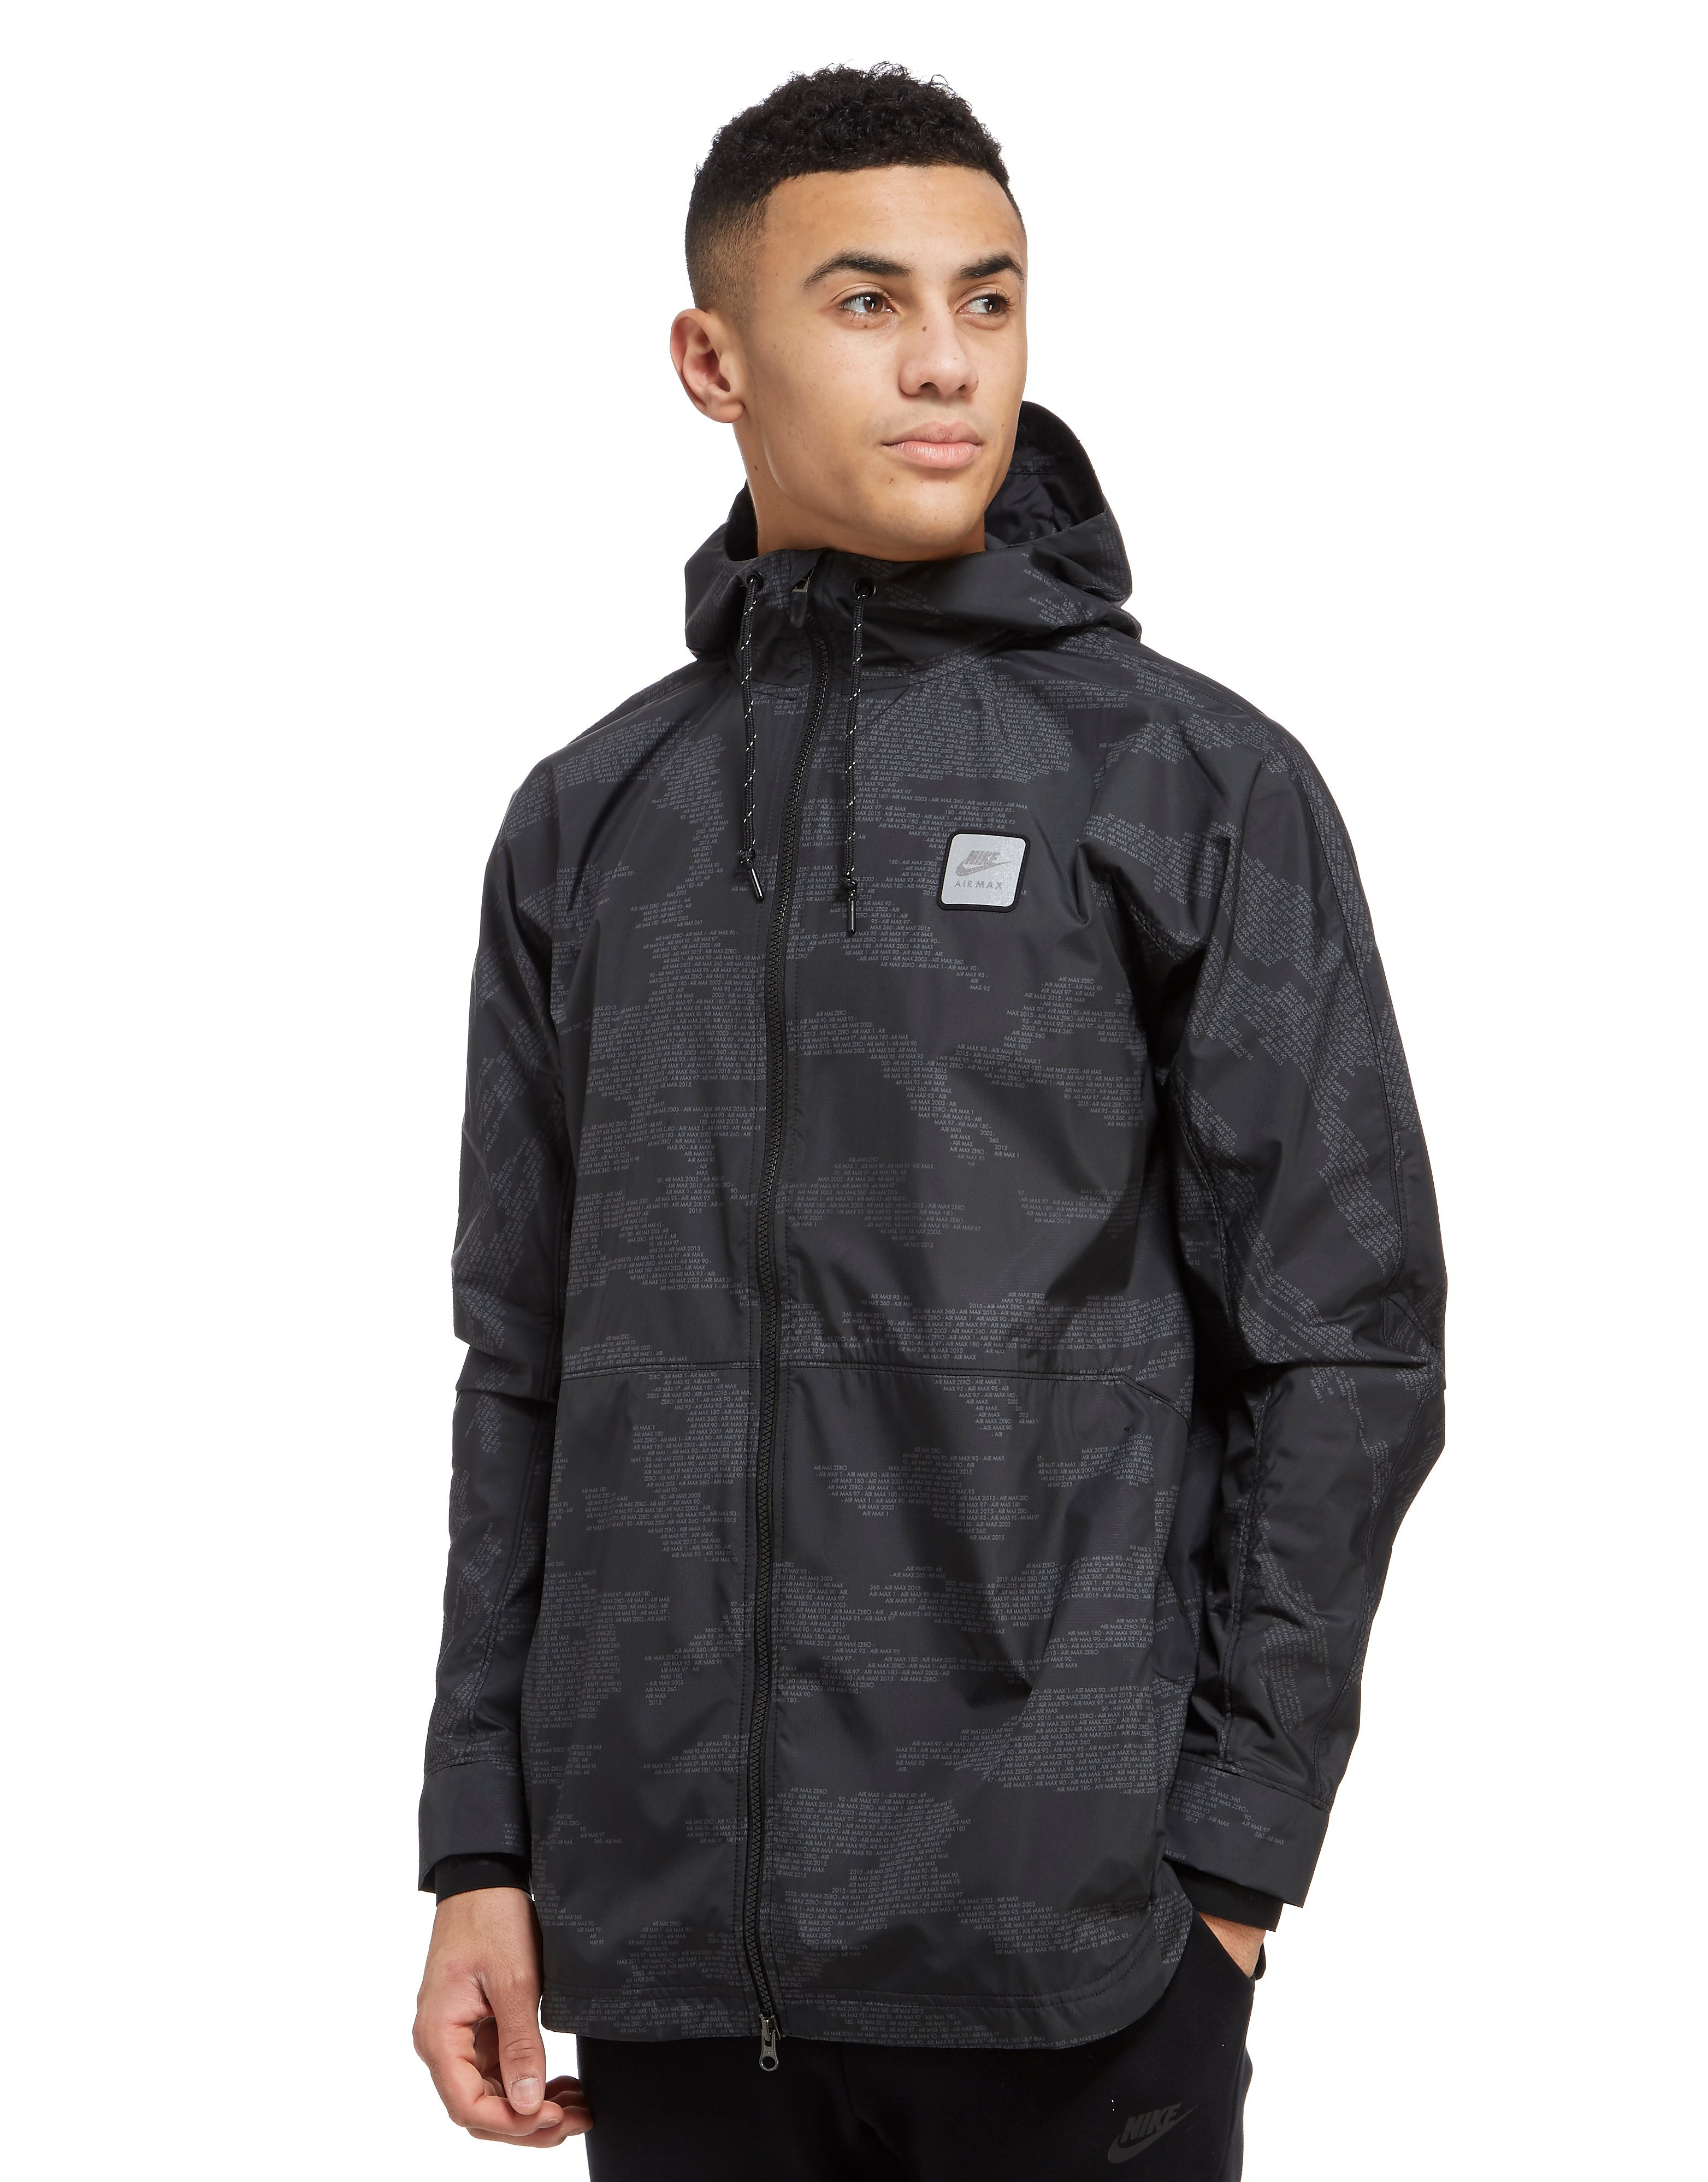 Nike Air Max Packable Jacket